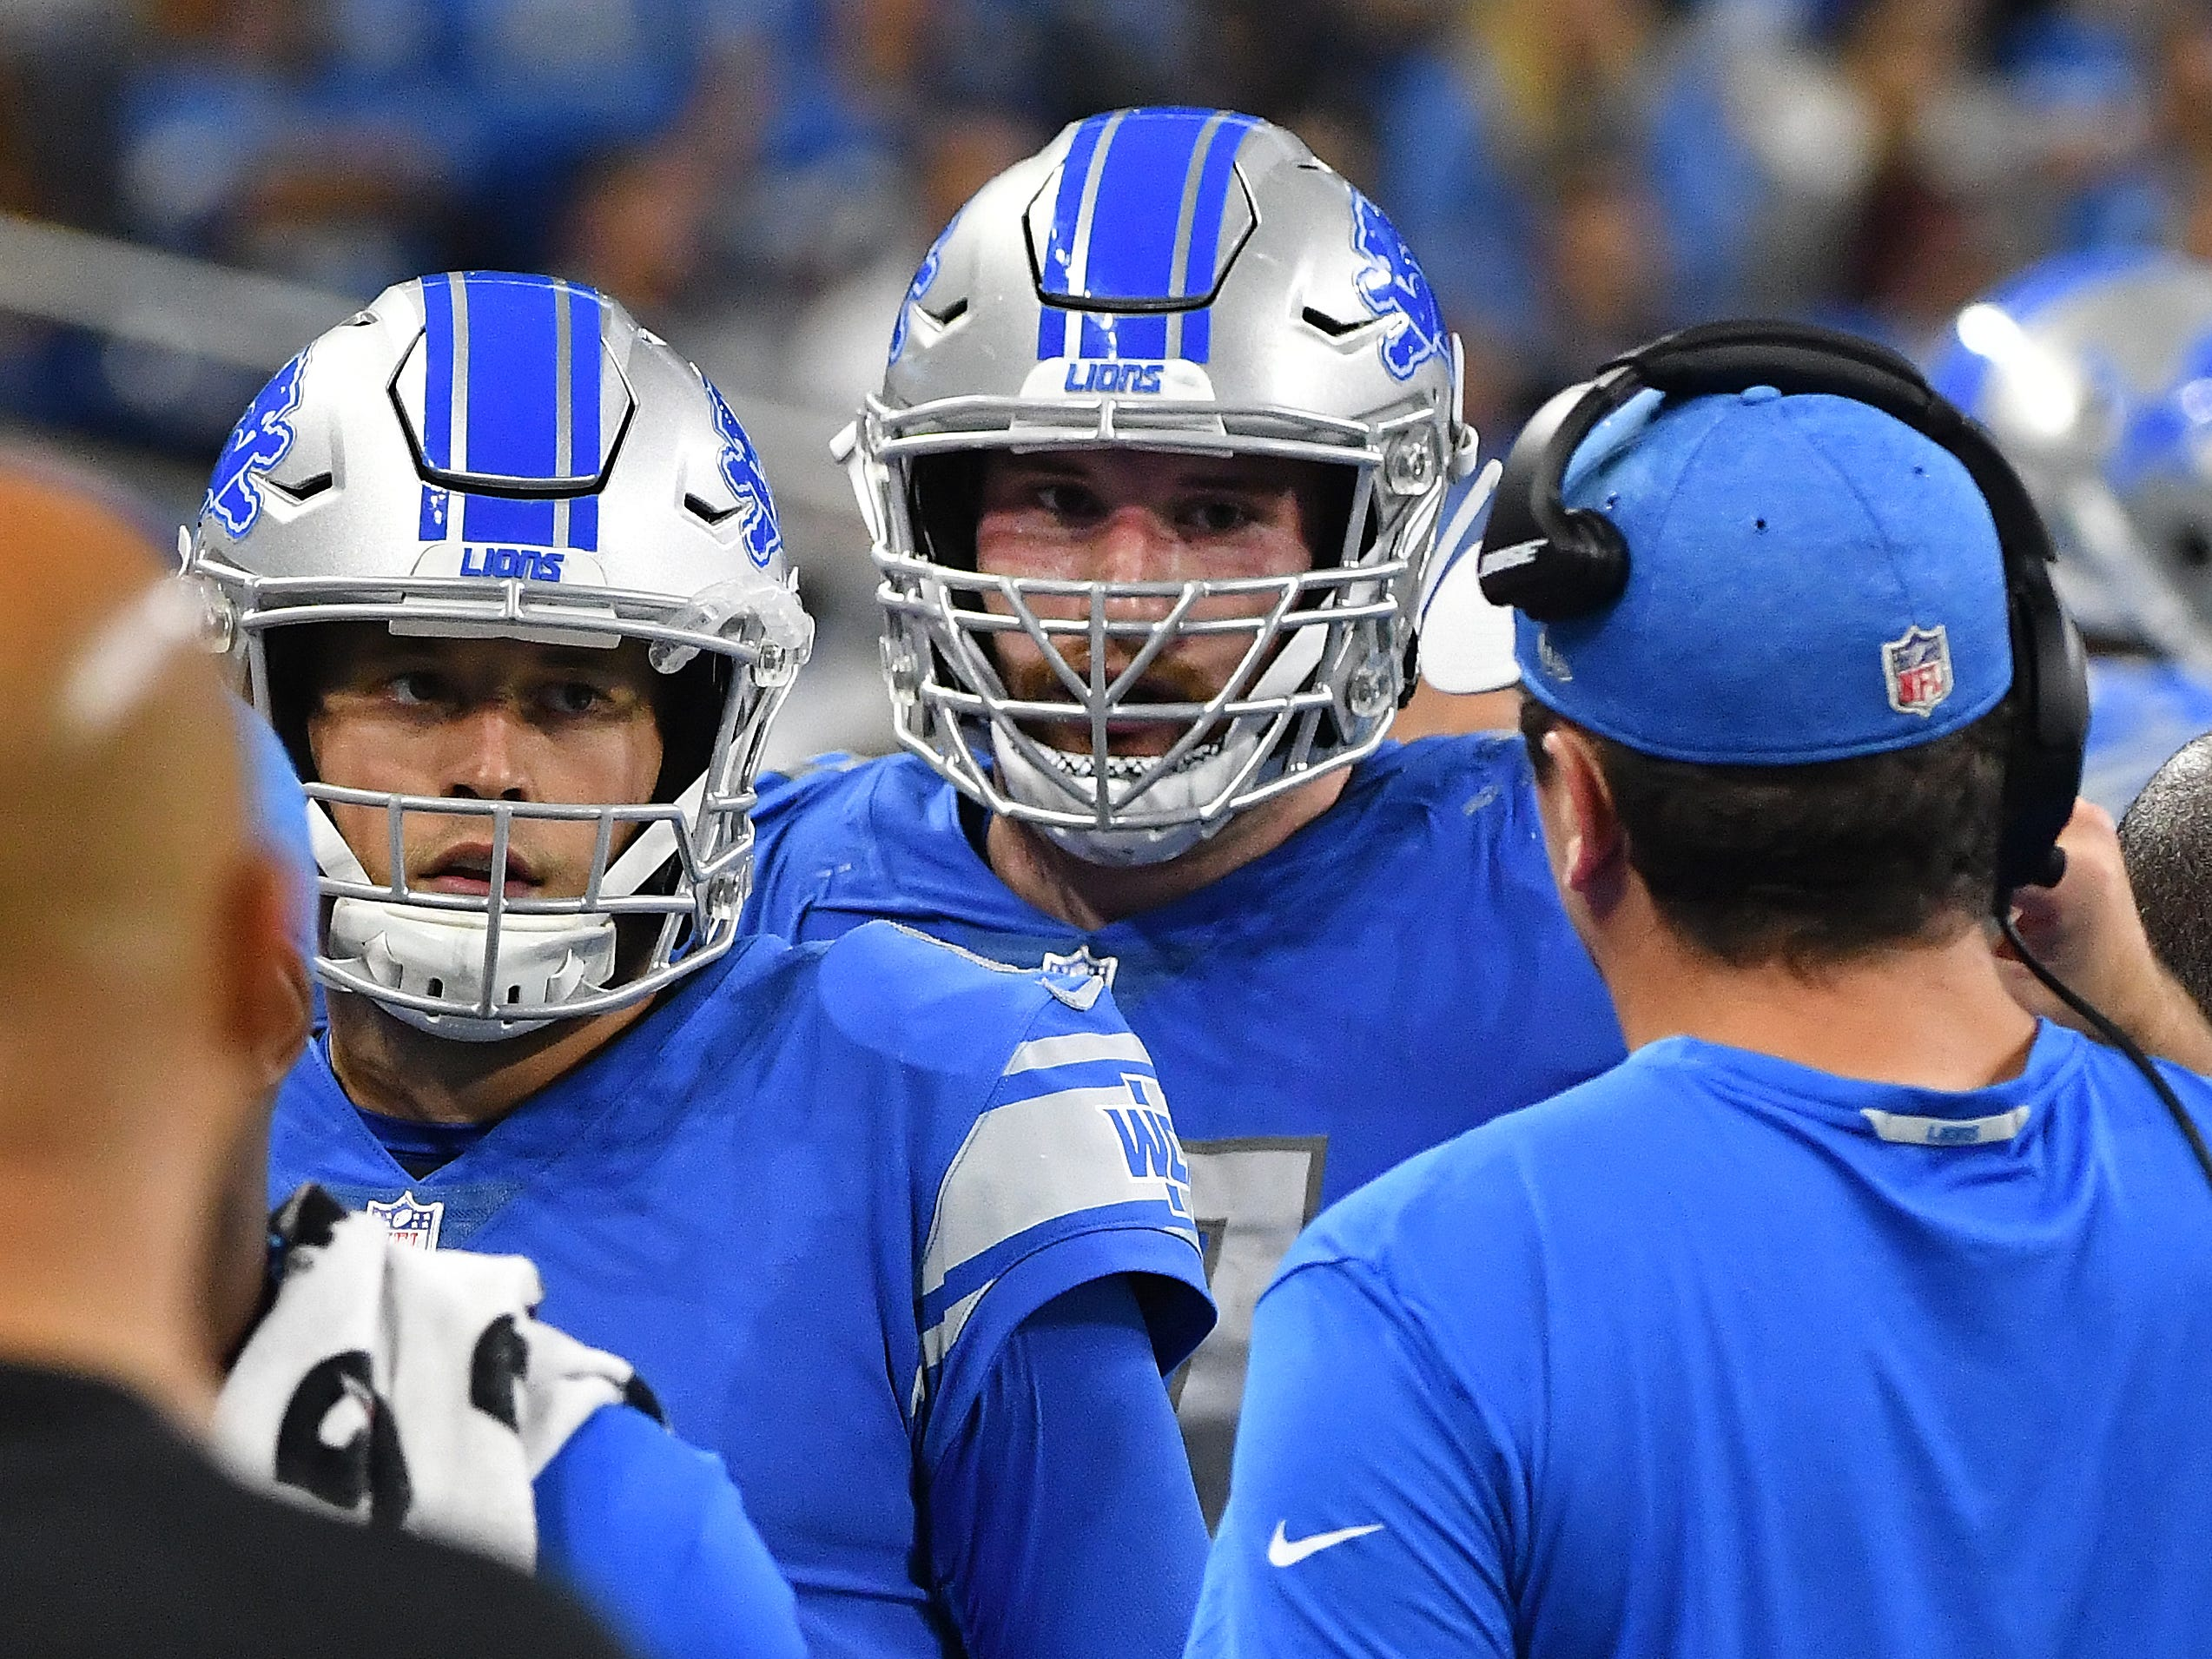 Lions quarterback Matthew Stafford and offensive lineman Frank Ragnow head back to the sidelines and offensive coordinator Jim Bob Cooter after an interception by Jets' Darron Lee in the third quarter.